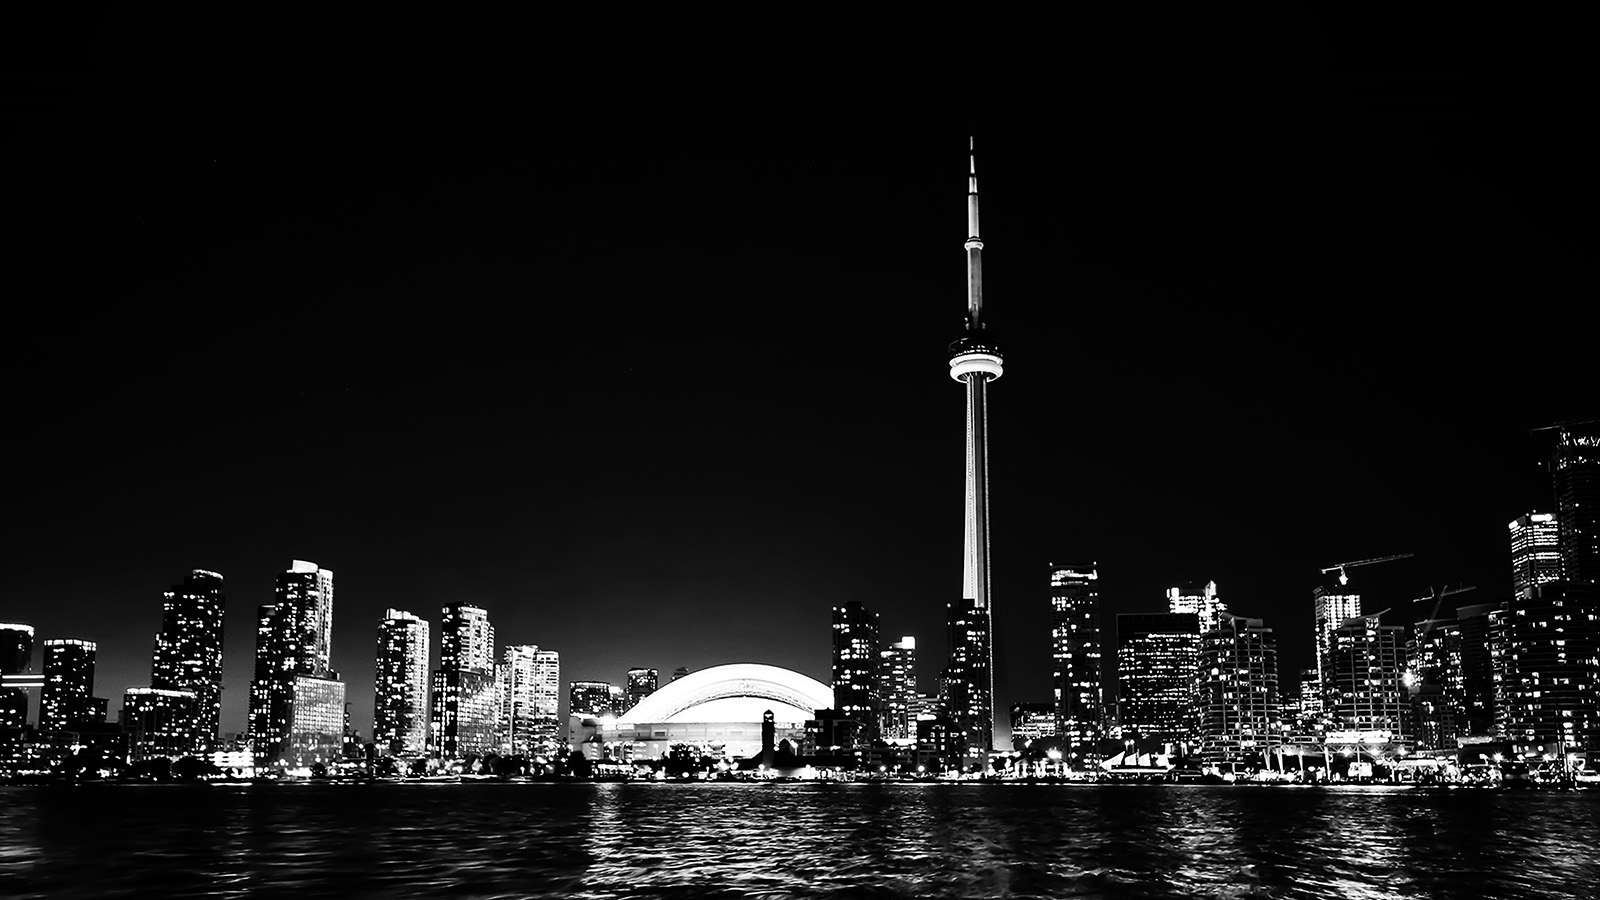 Fall Desktop Wallpaper Backgrounds Mt45 Toronto City Night Missing Tower Dark Cityview Bw